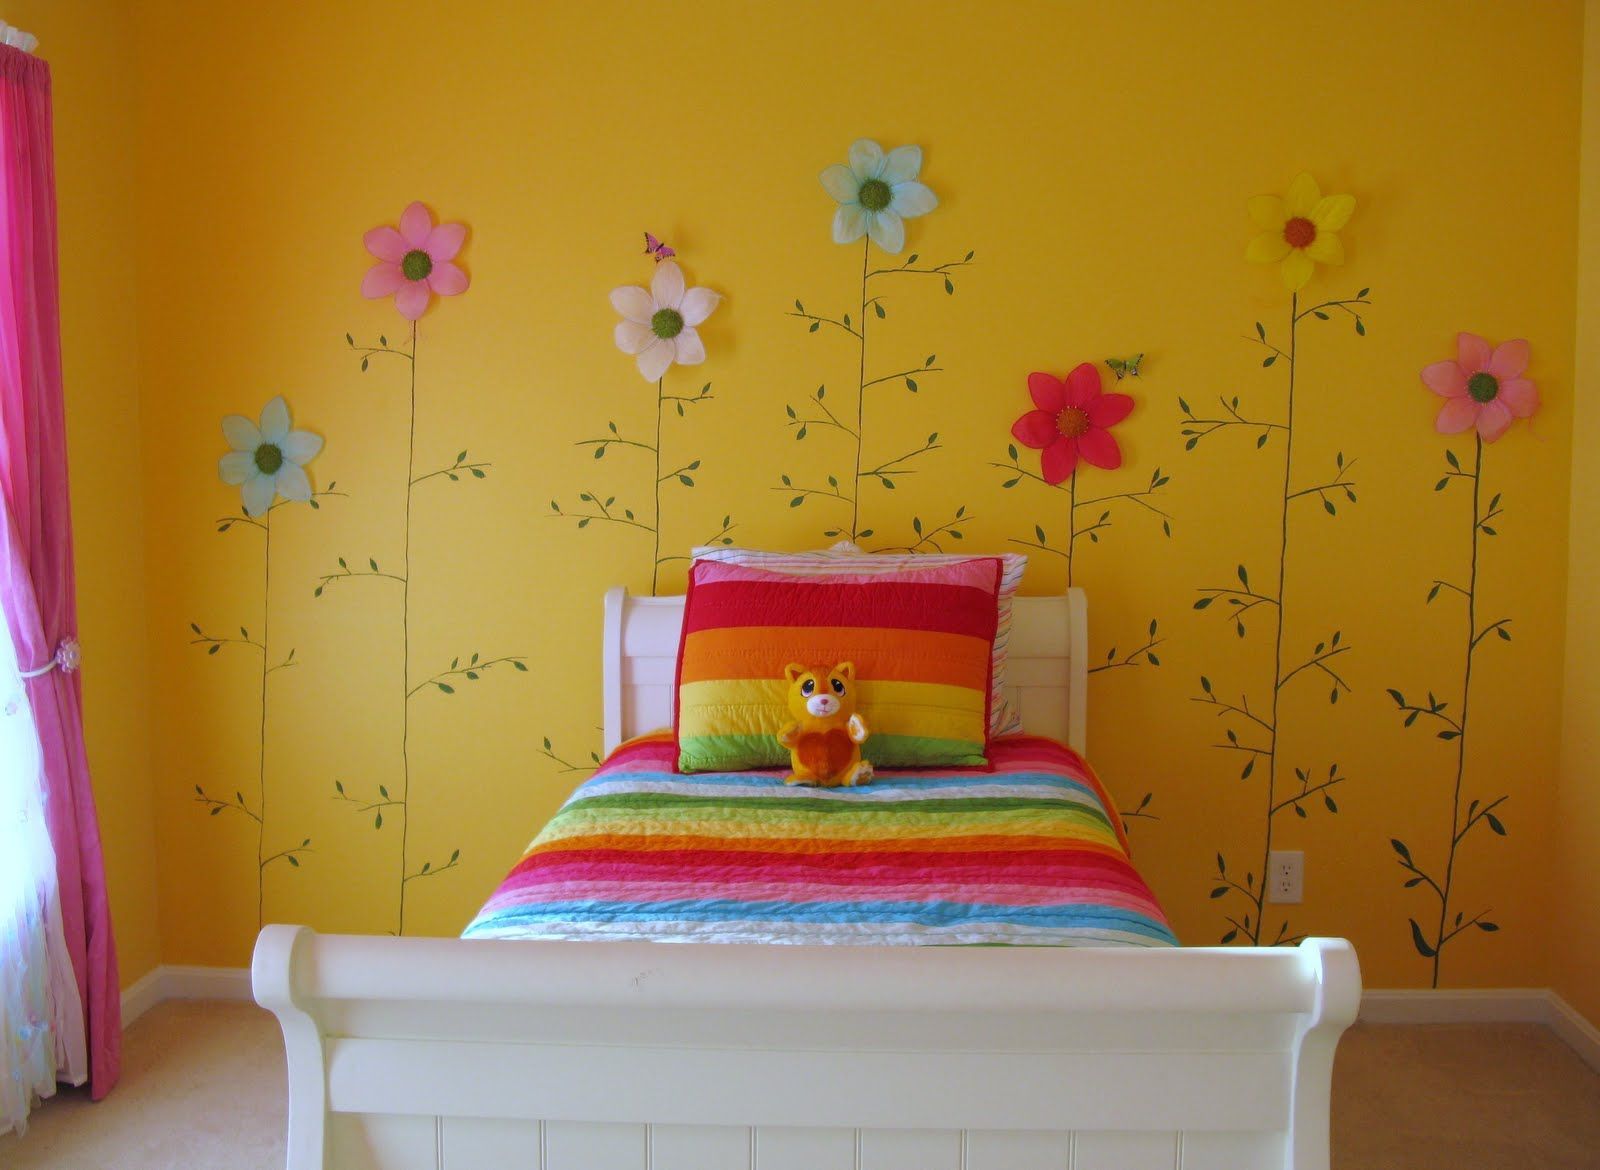 Bedroom Decor Yellow 5 main bedroom design trends for 2017 | room, flower and bedrooms